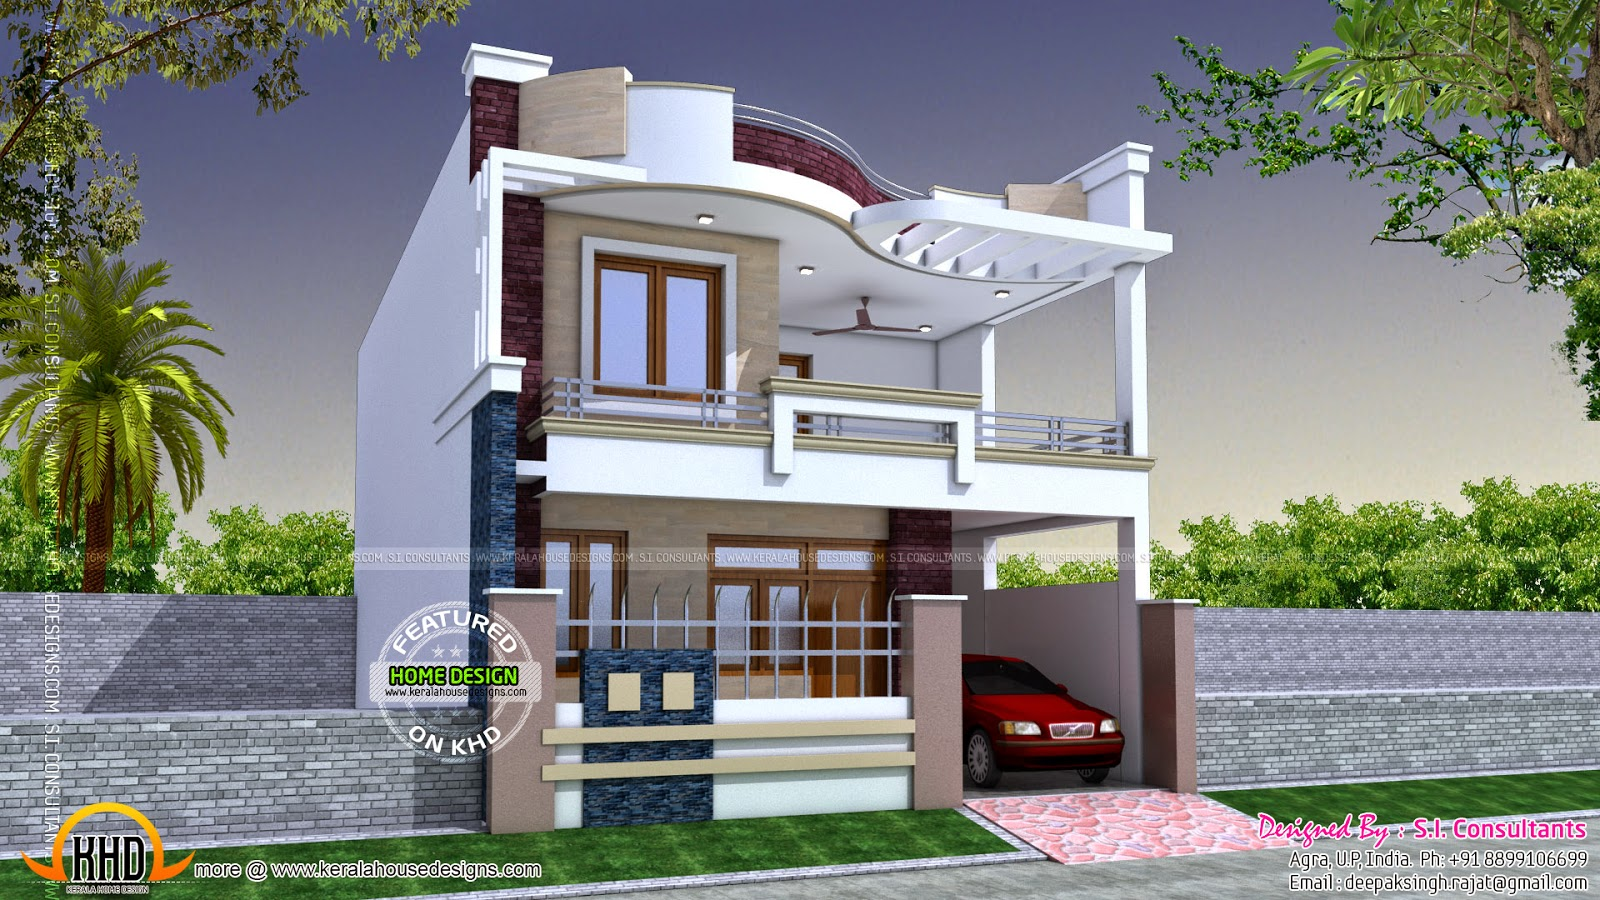 Modern indian home design kerala home design and floor plans for Best home design